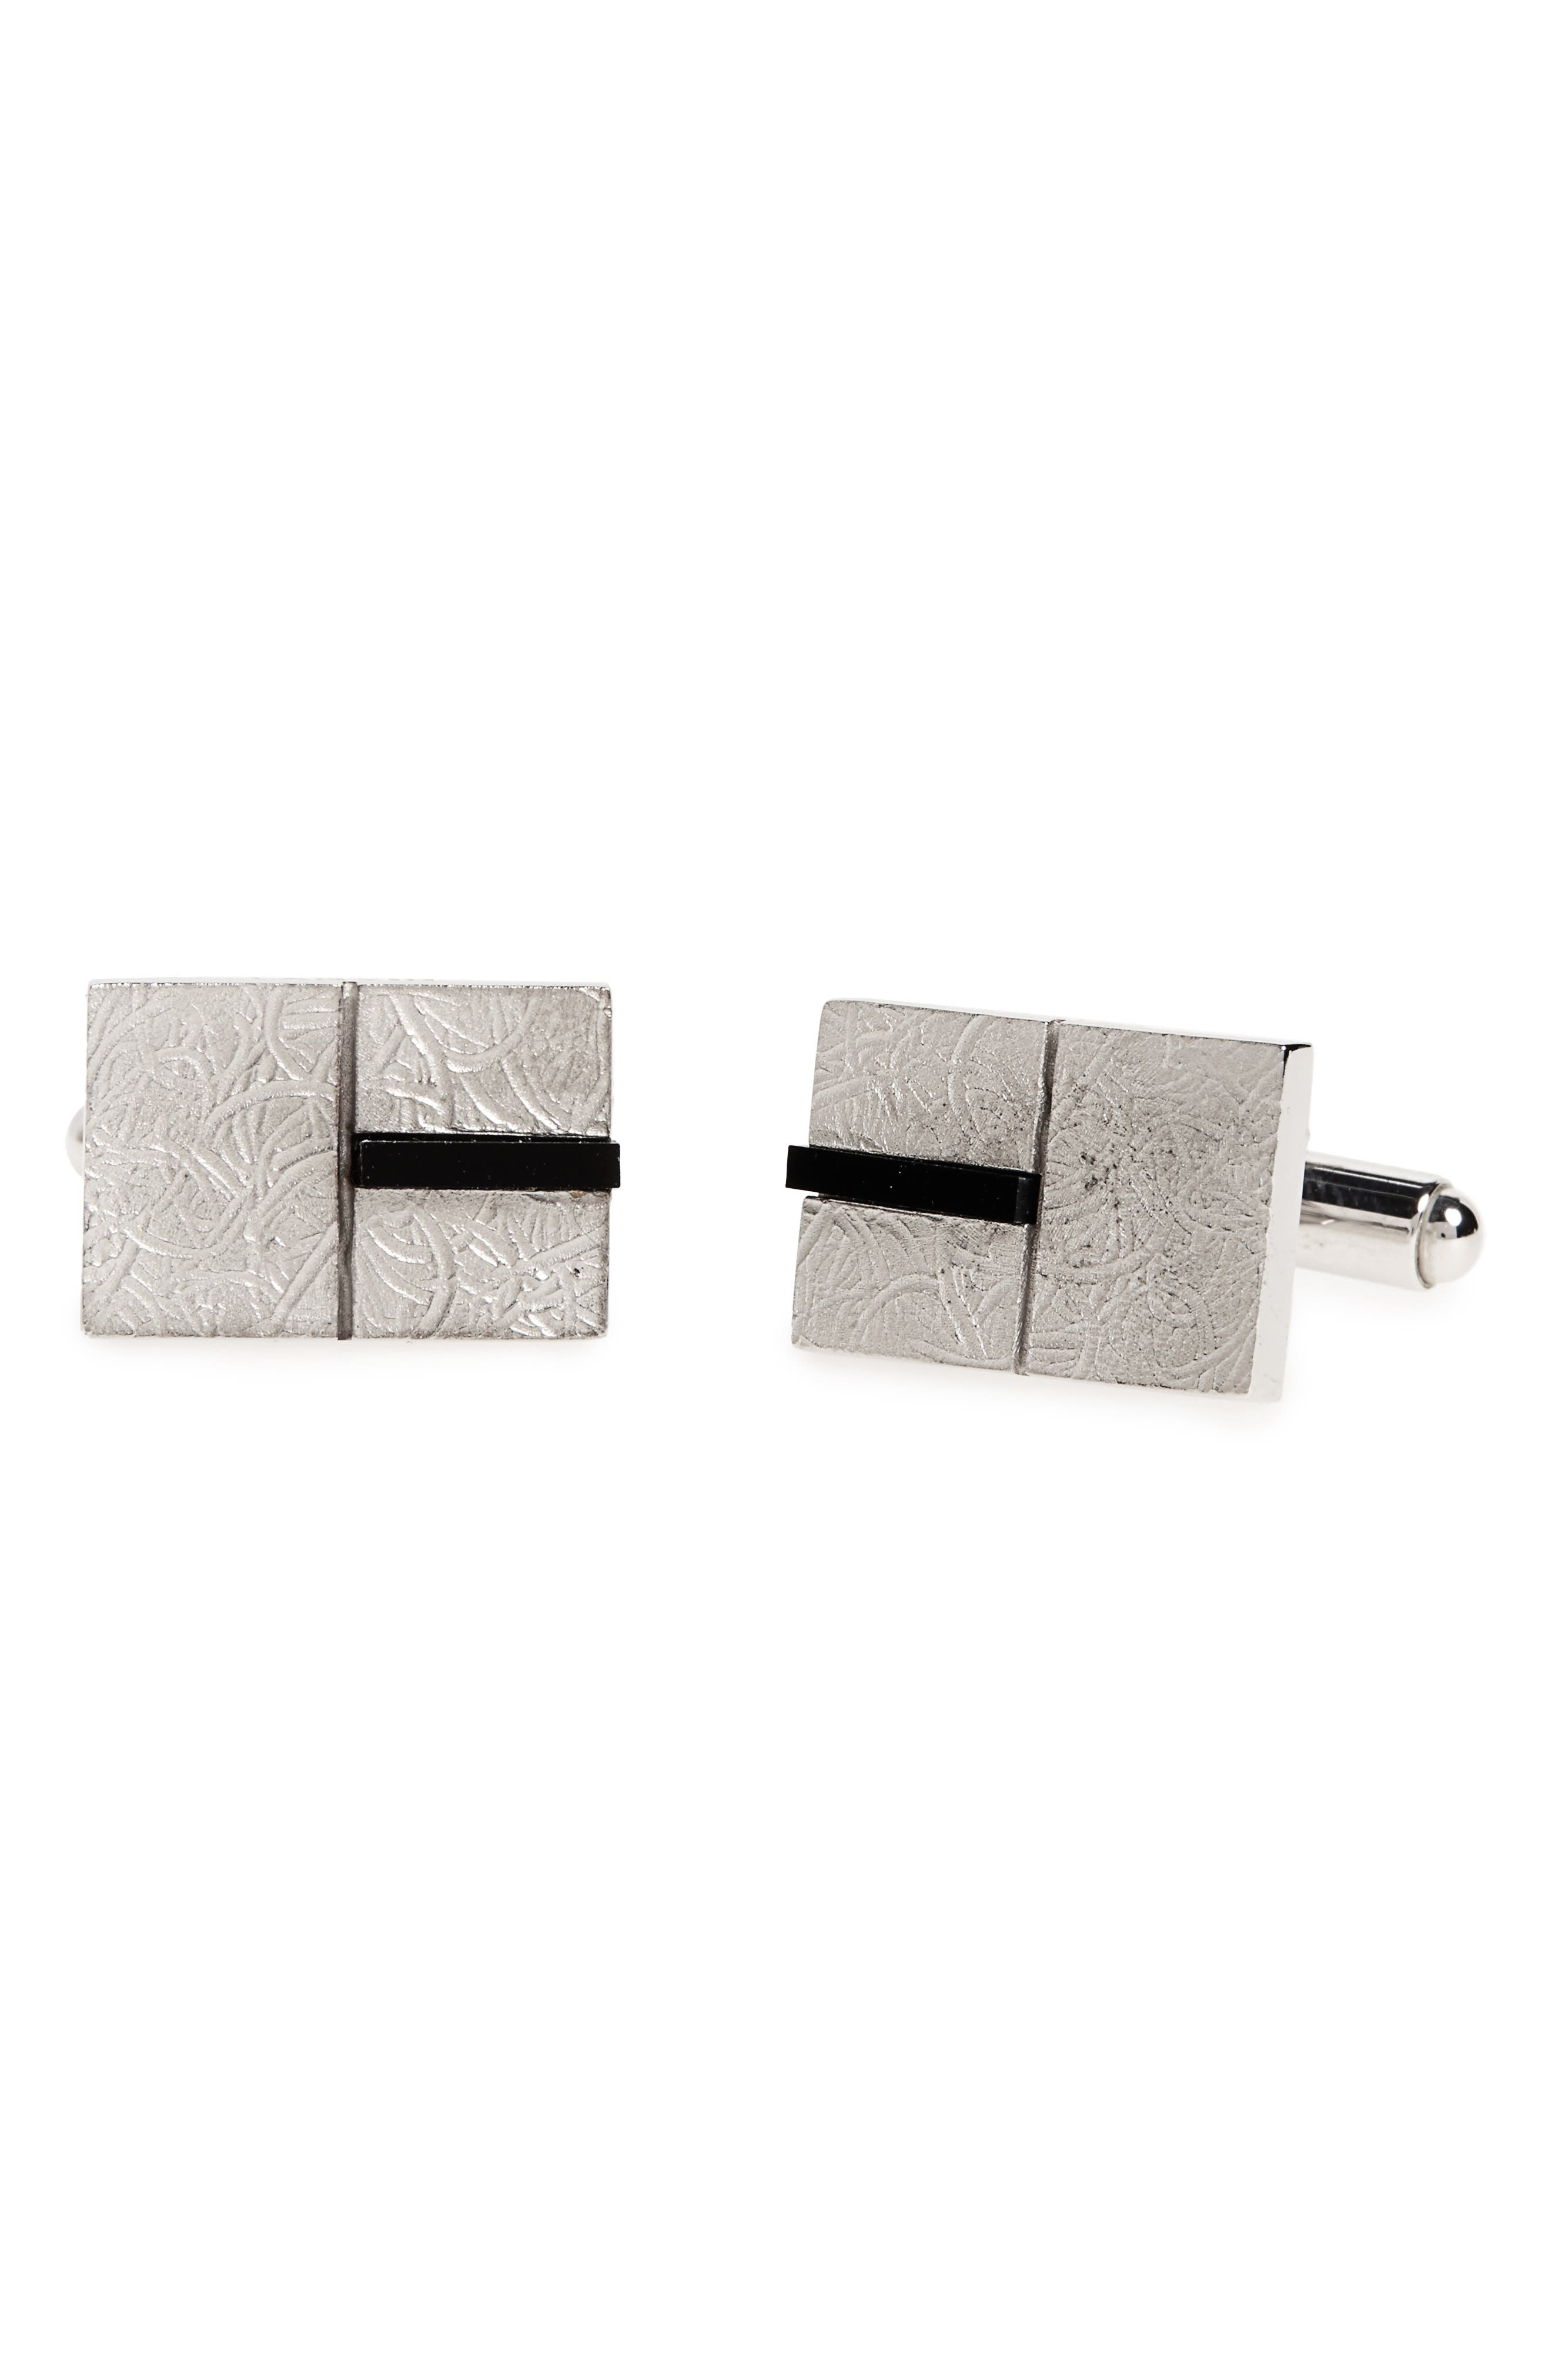 Squares Cuff Links,                         Main,                         color, 040